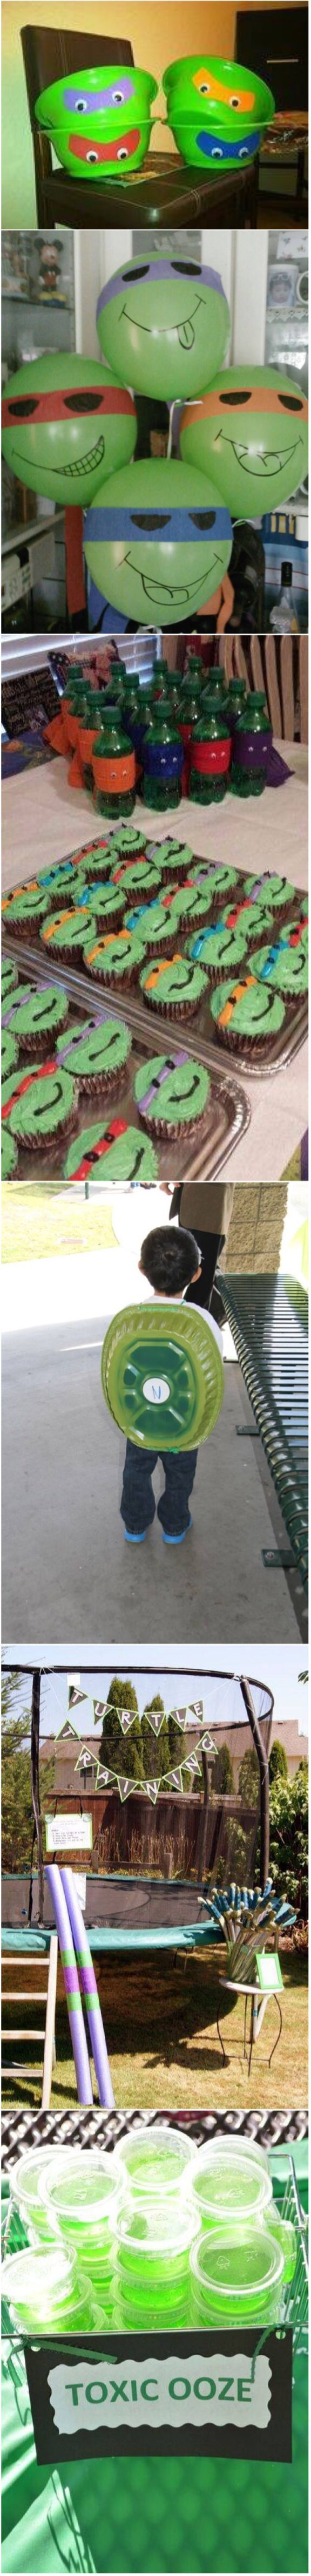 German company builds the ultimate indoor cat walkway softpedia - Tmnt Birthday Party Ideas